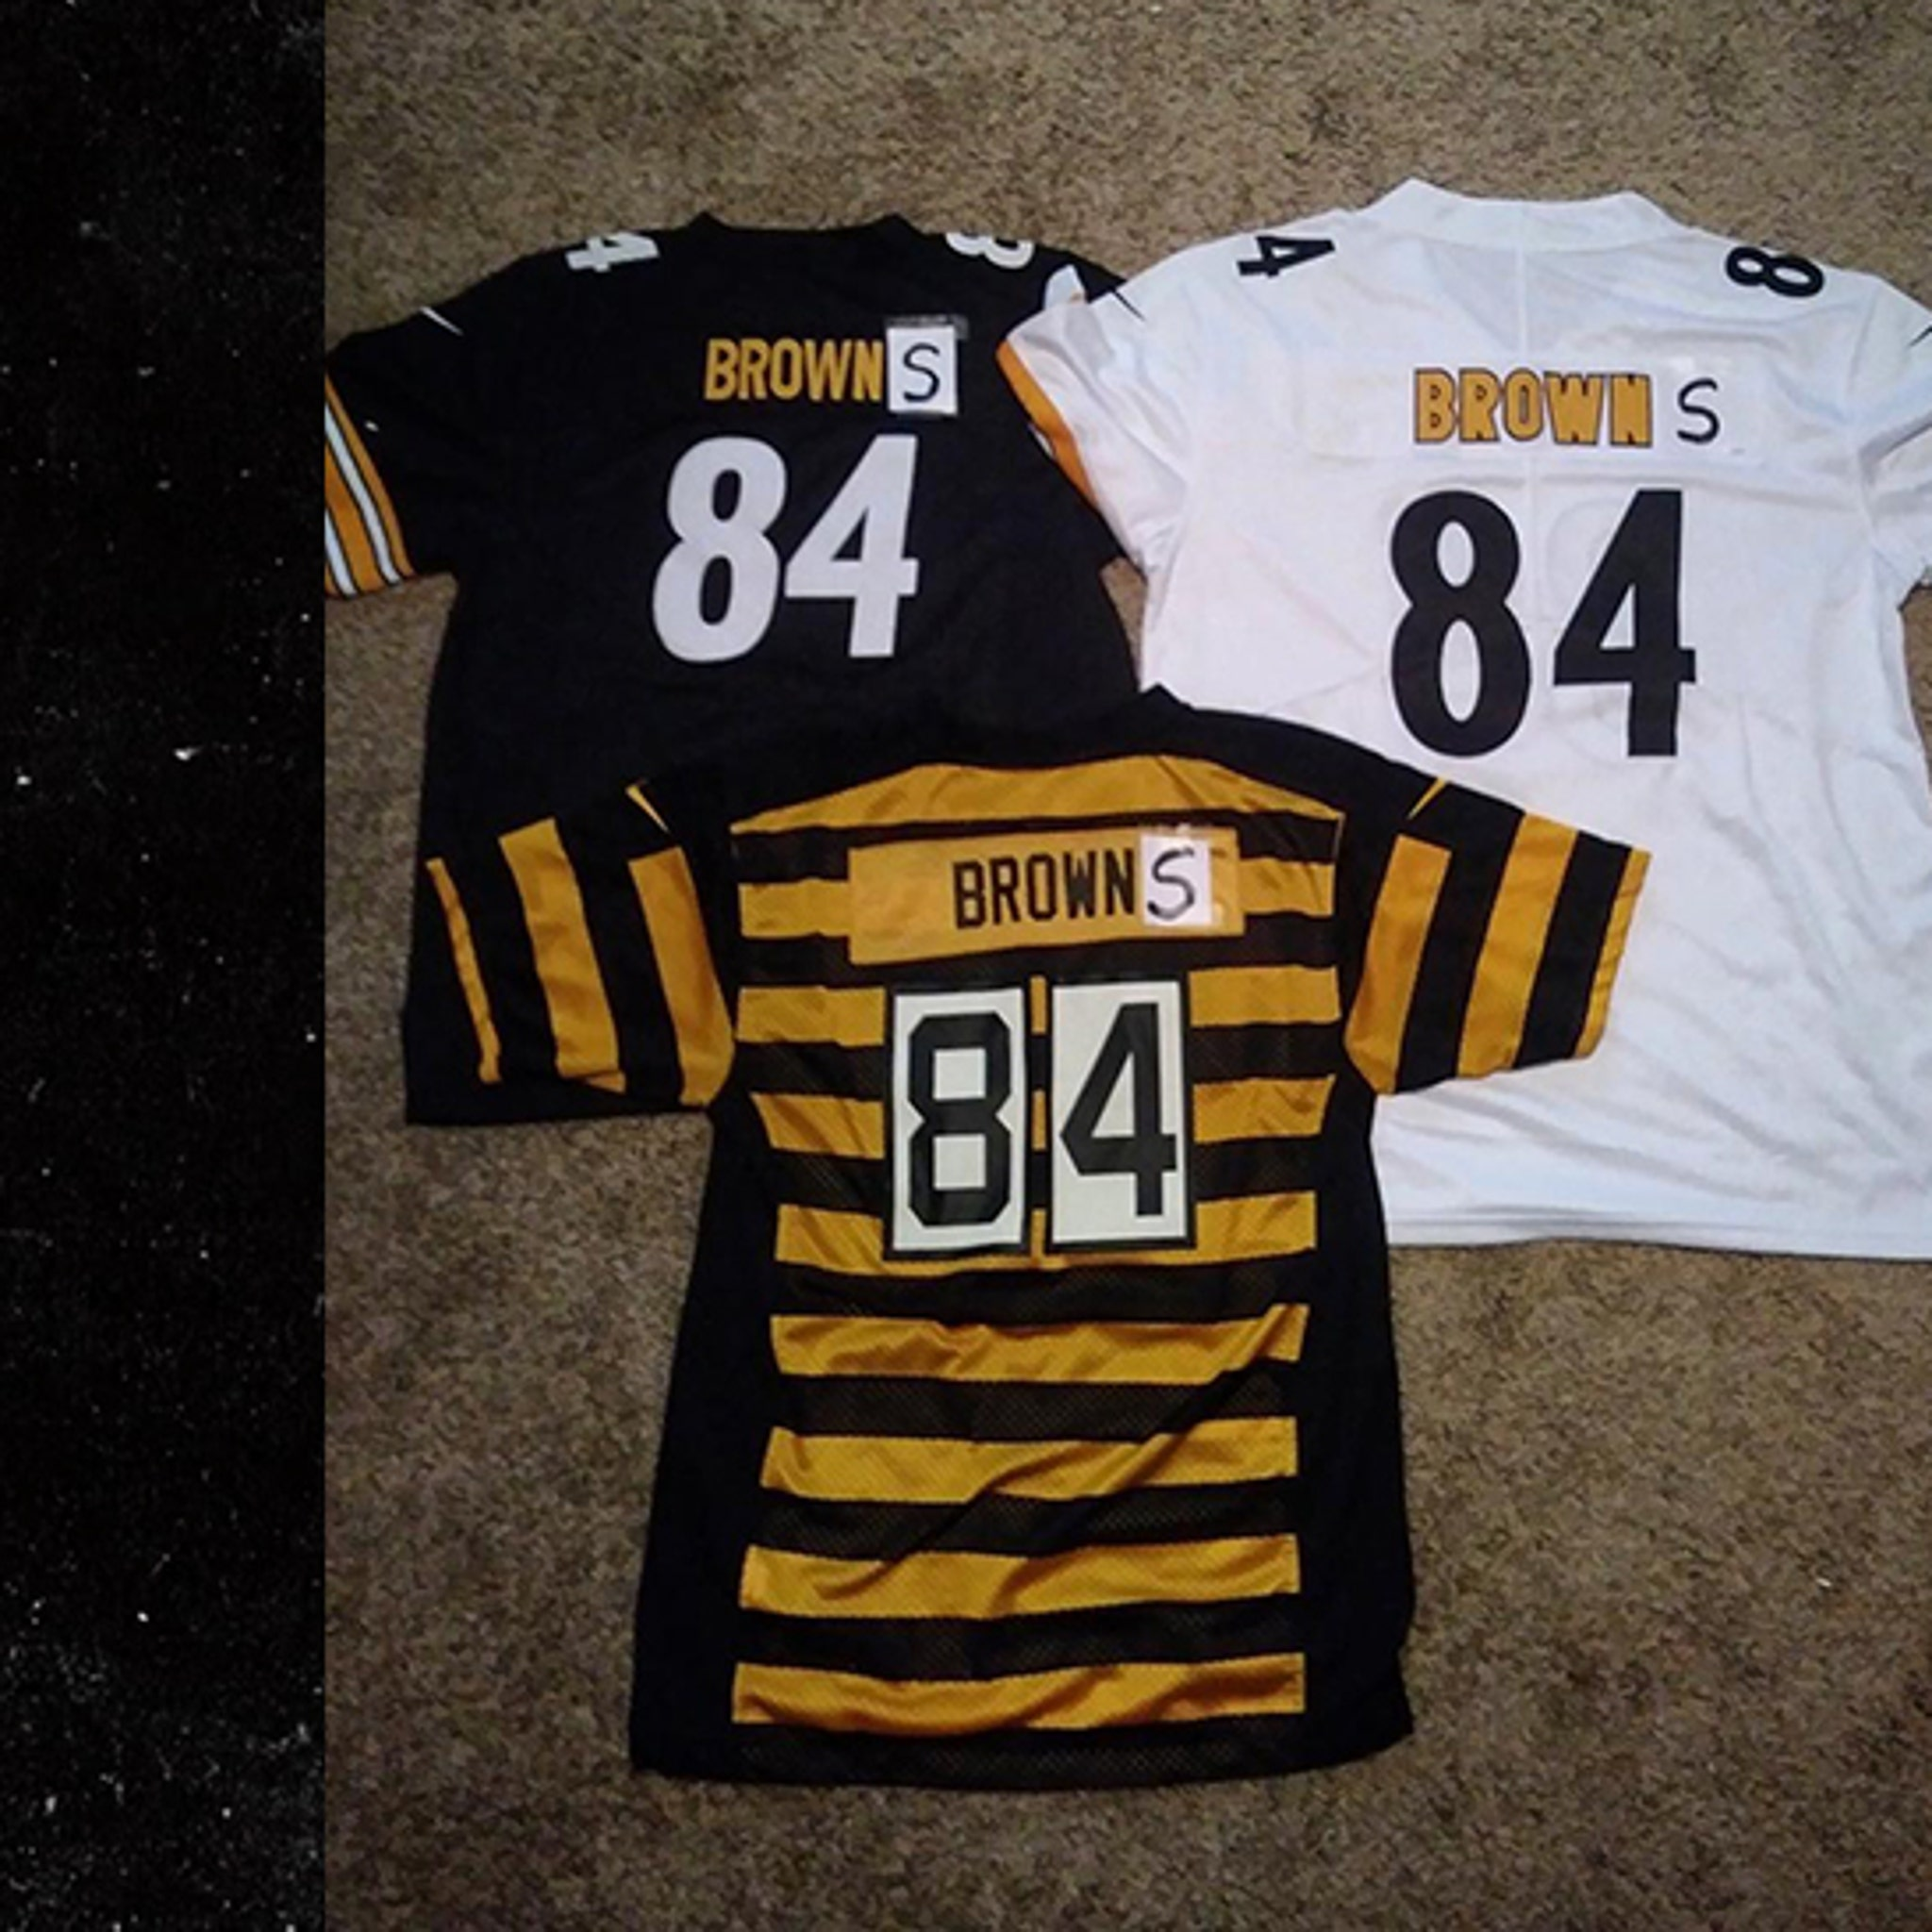 34b1511c99d0 Steelers' Antonio Brown Rocks New 'Browns' Gear, Let's Go Cleveland!